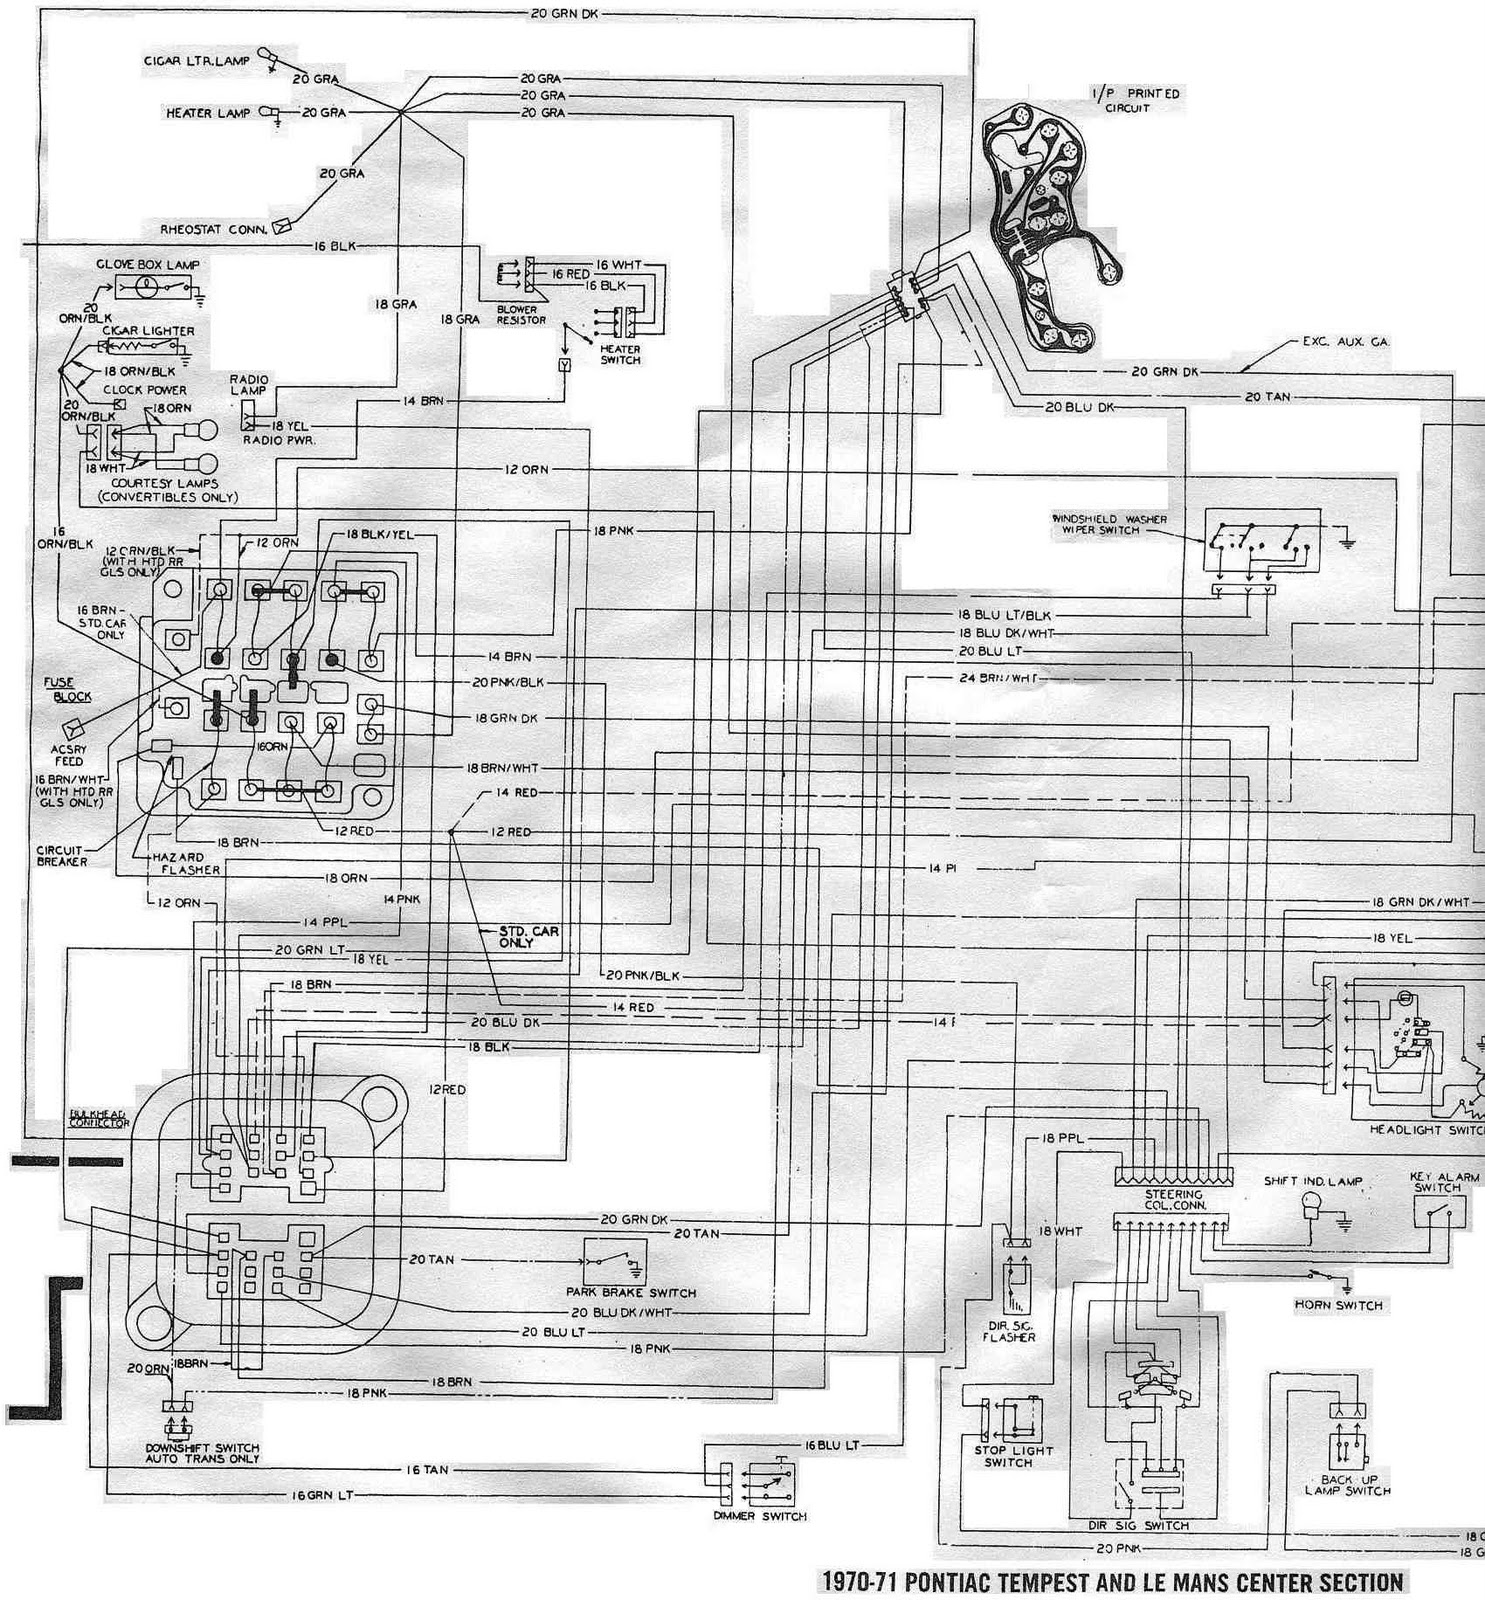 72 pontiac lemans wiring diagram wiring library 1976 Pontiac LeMans 1970 pontiac lemans wiring diagram books of wiring diagram \\u2022 1972 pontiac lemans wiring diagram